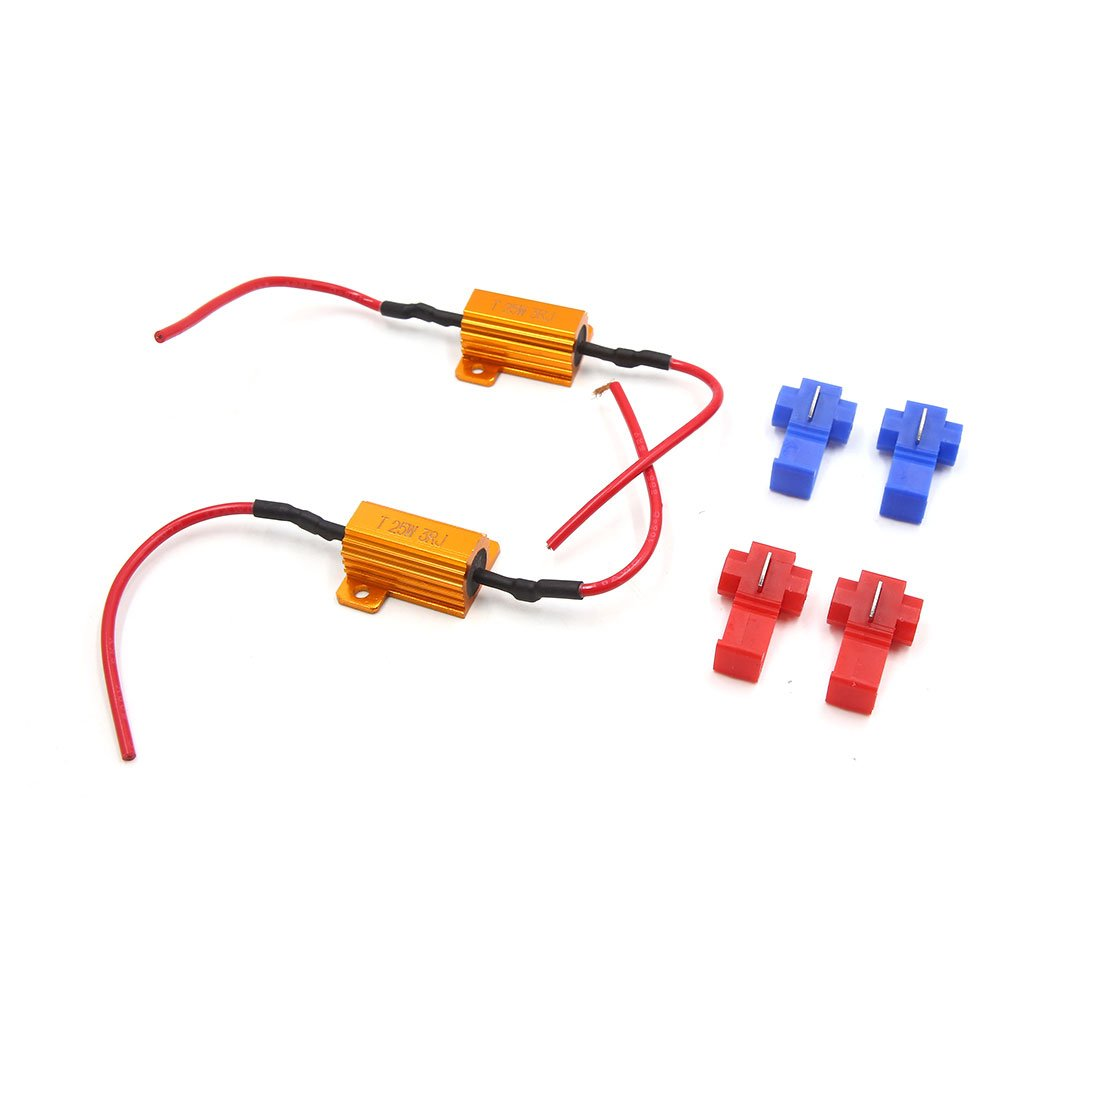 uxcell 2Pcs 25W 3RJ LED Headlight Canbus Decoder No Error Free Load Resistor for Car